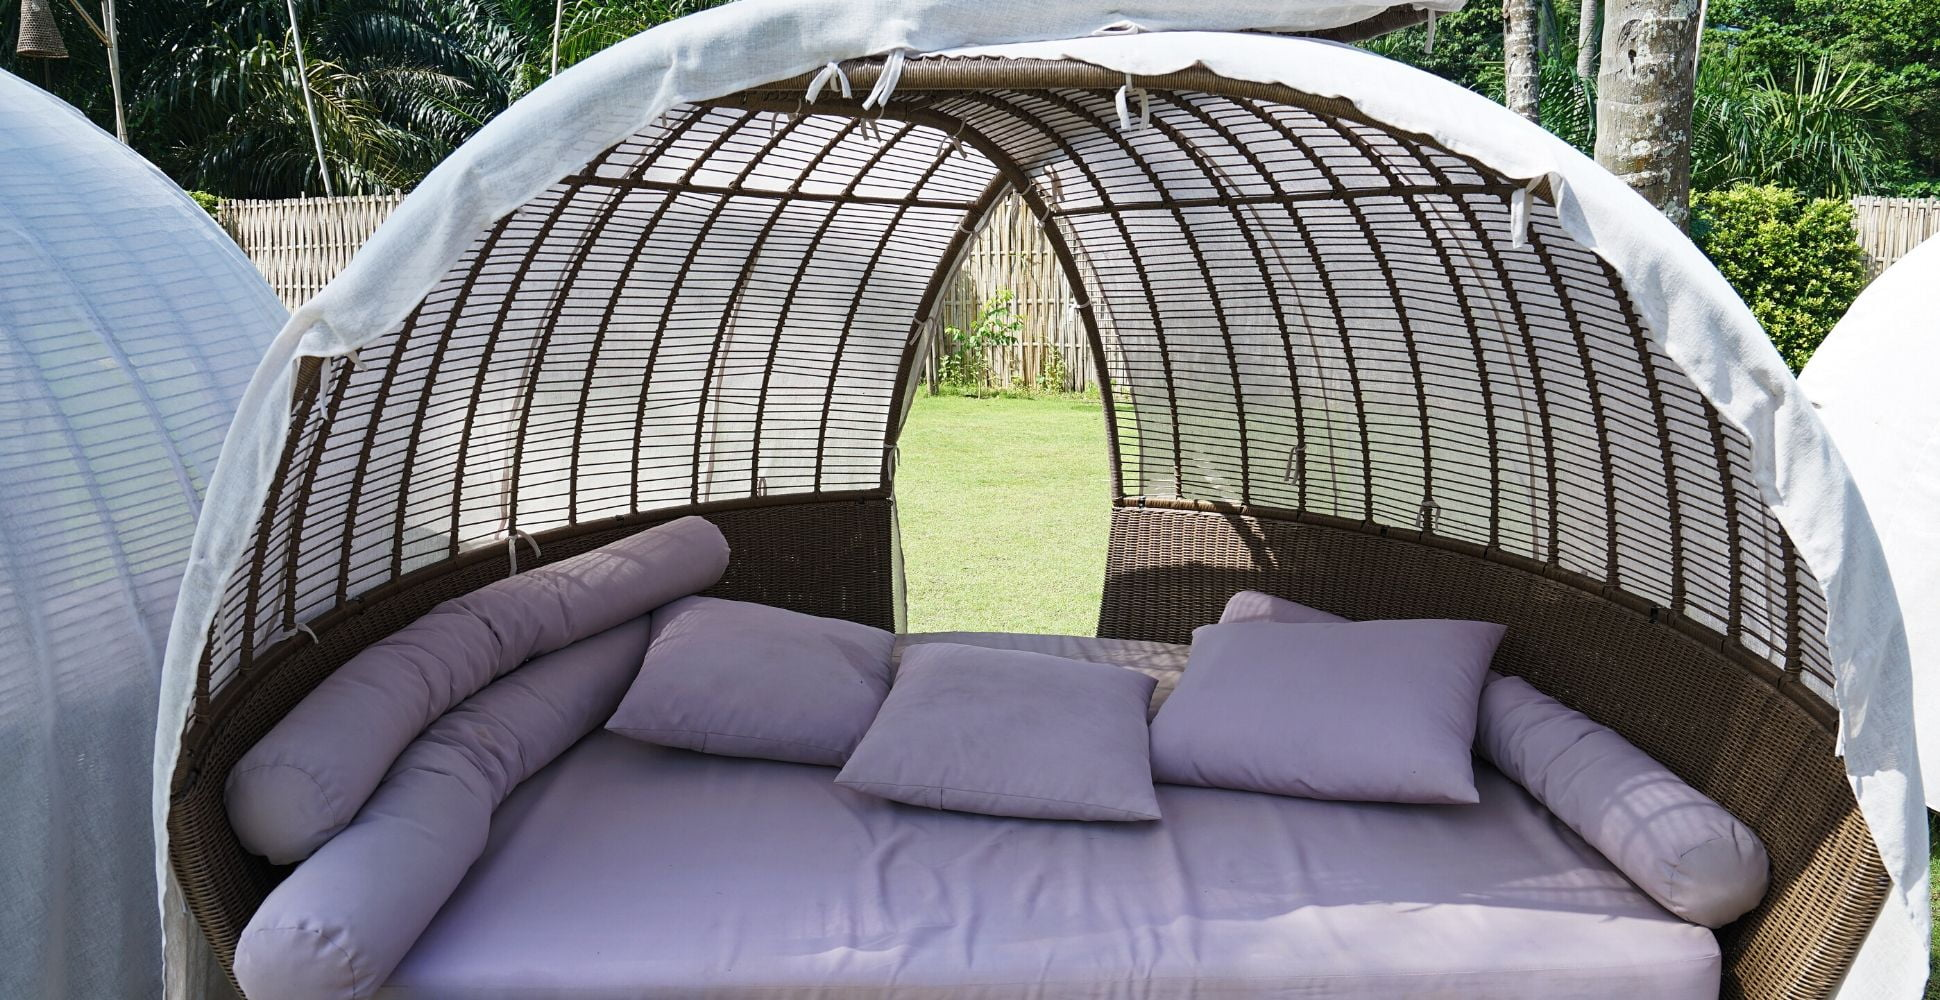 5 Best Outdoor Garden Daybeds Uk 2021 Review